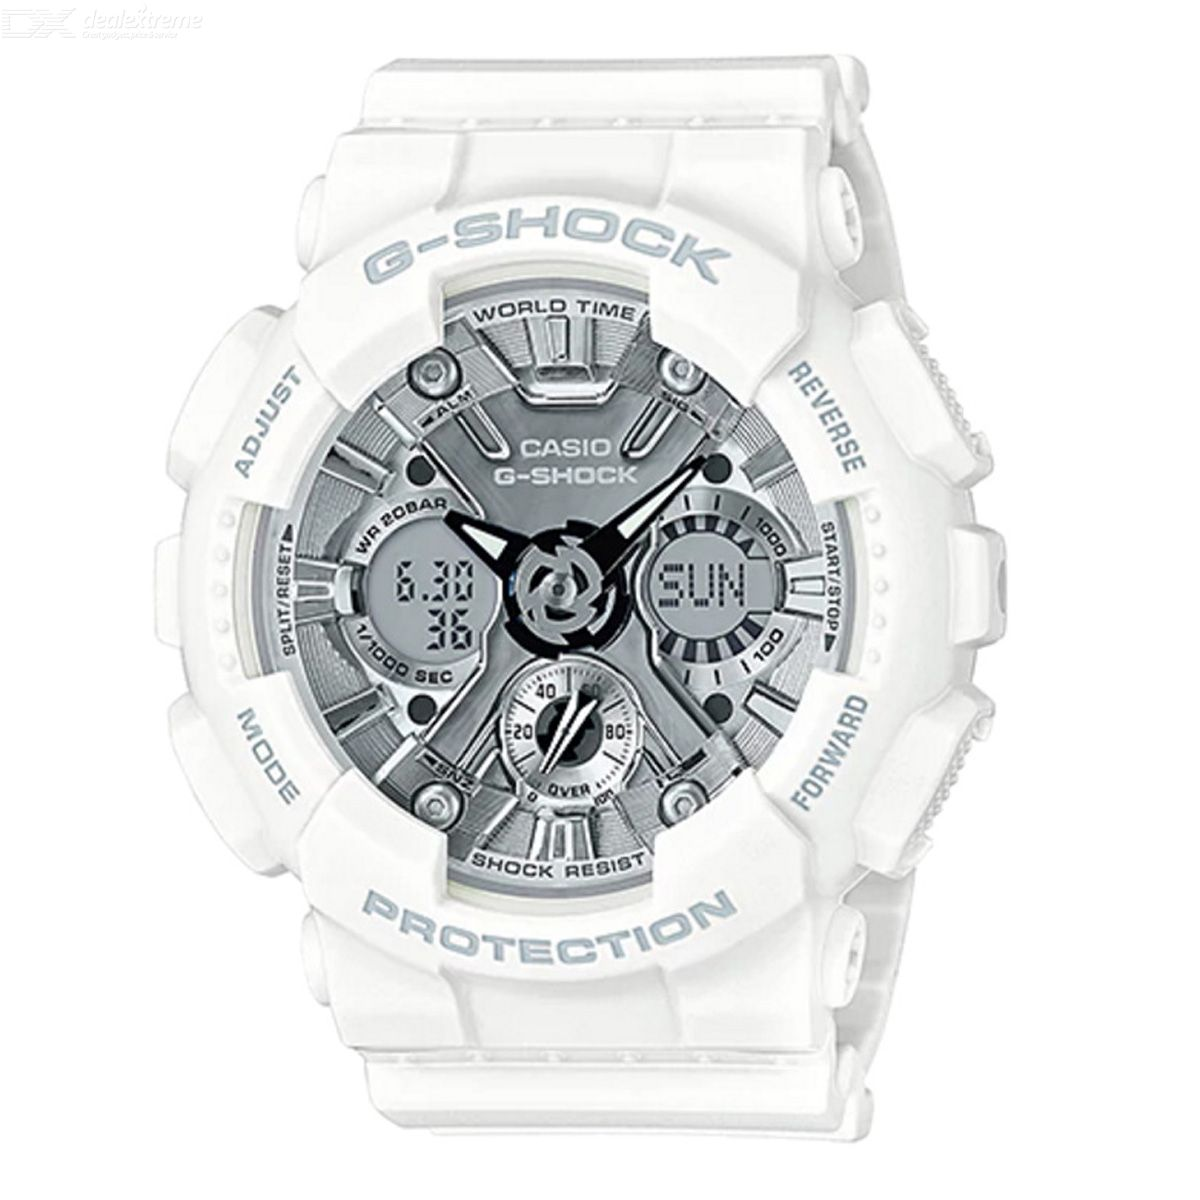 Casio GMA-S120MF-7A1 G-Shock S Series Analog Digital Watch - White + Silver